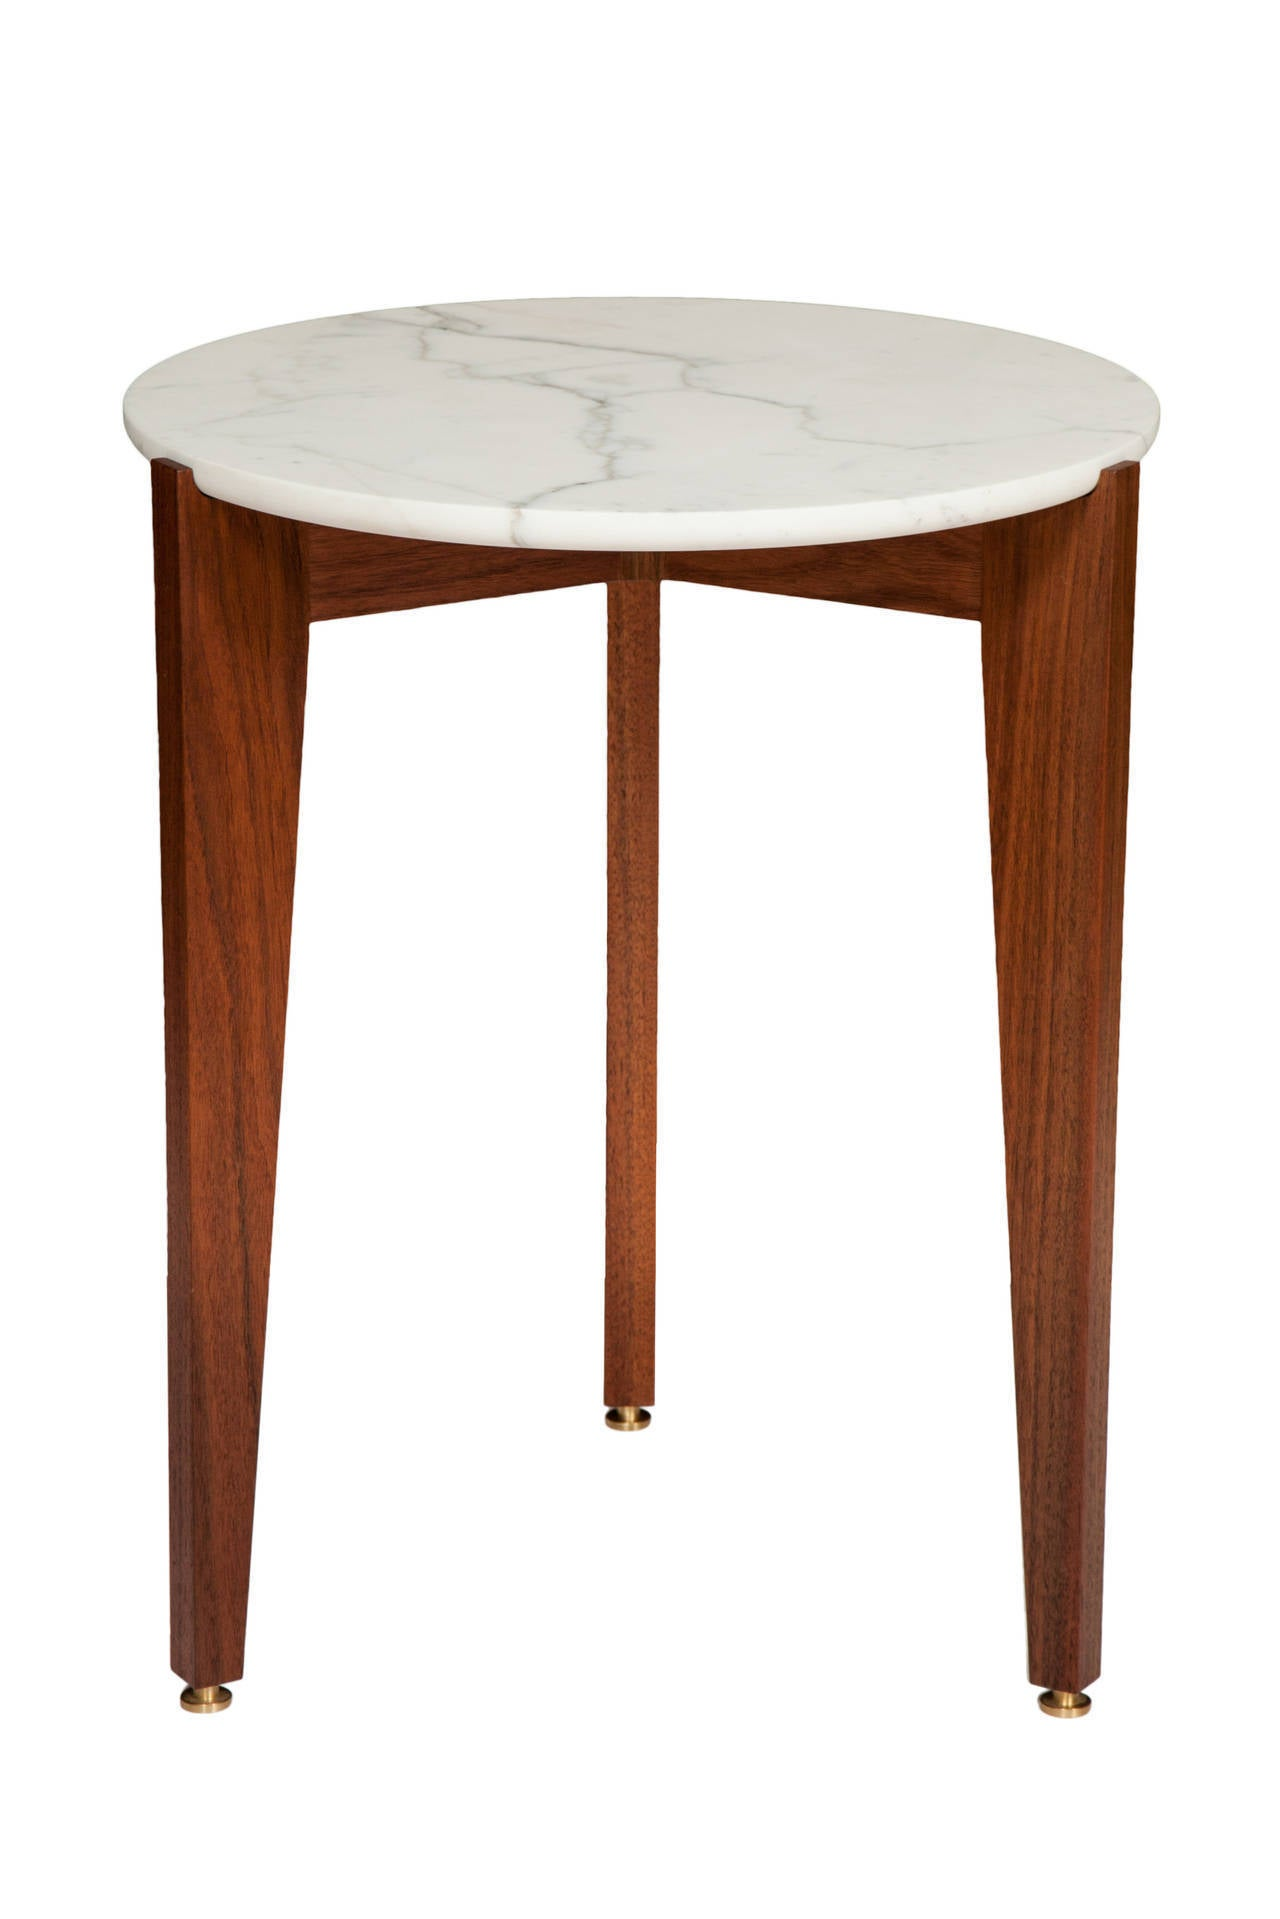 American black walnut tripod side table with Italian calcutta marble top. Solid brass adjustable foot levellers. Designed by Paul Mignogna for Stillmade.  Custom orders have a lead time of 10-12 weeks FOB NYC. Lead time contingent upon selection